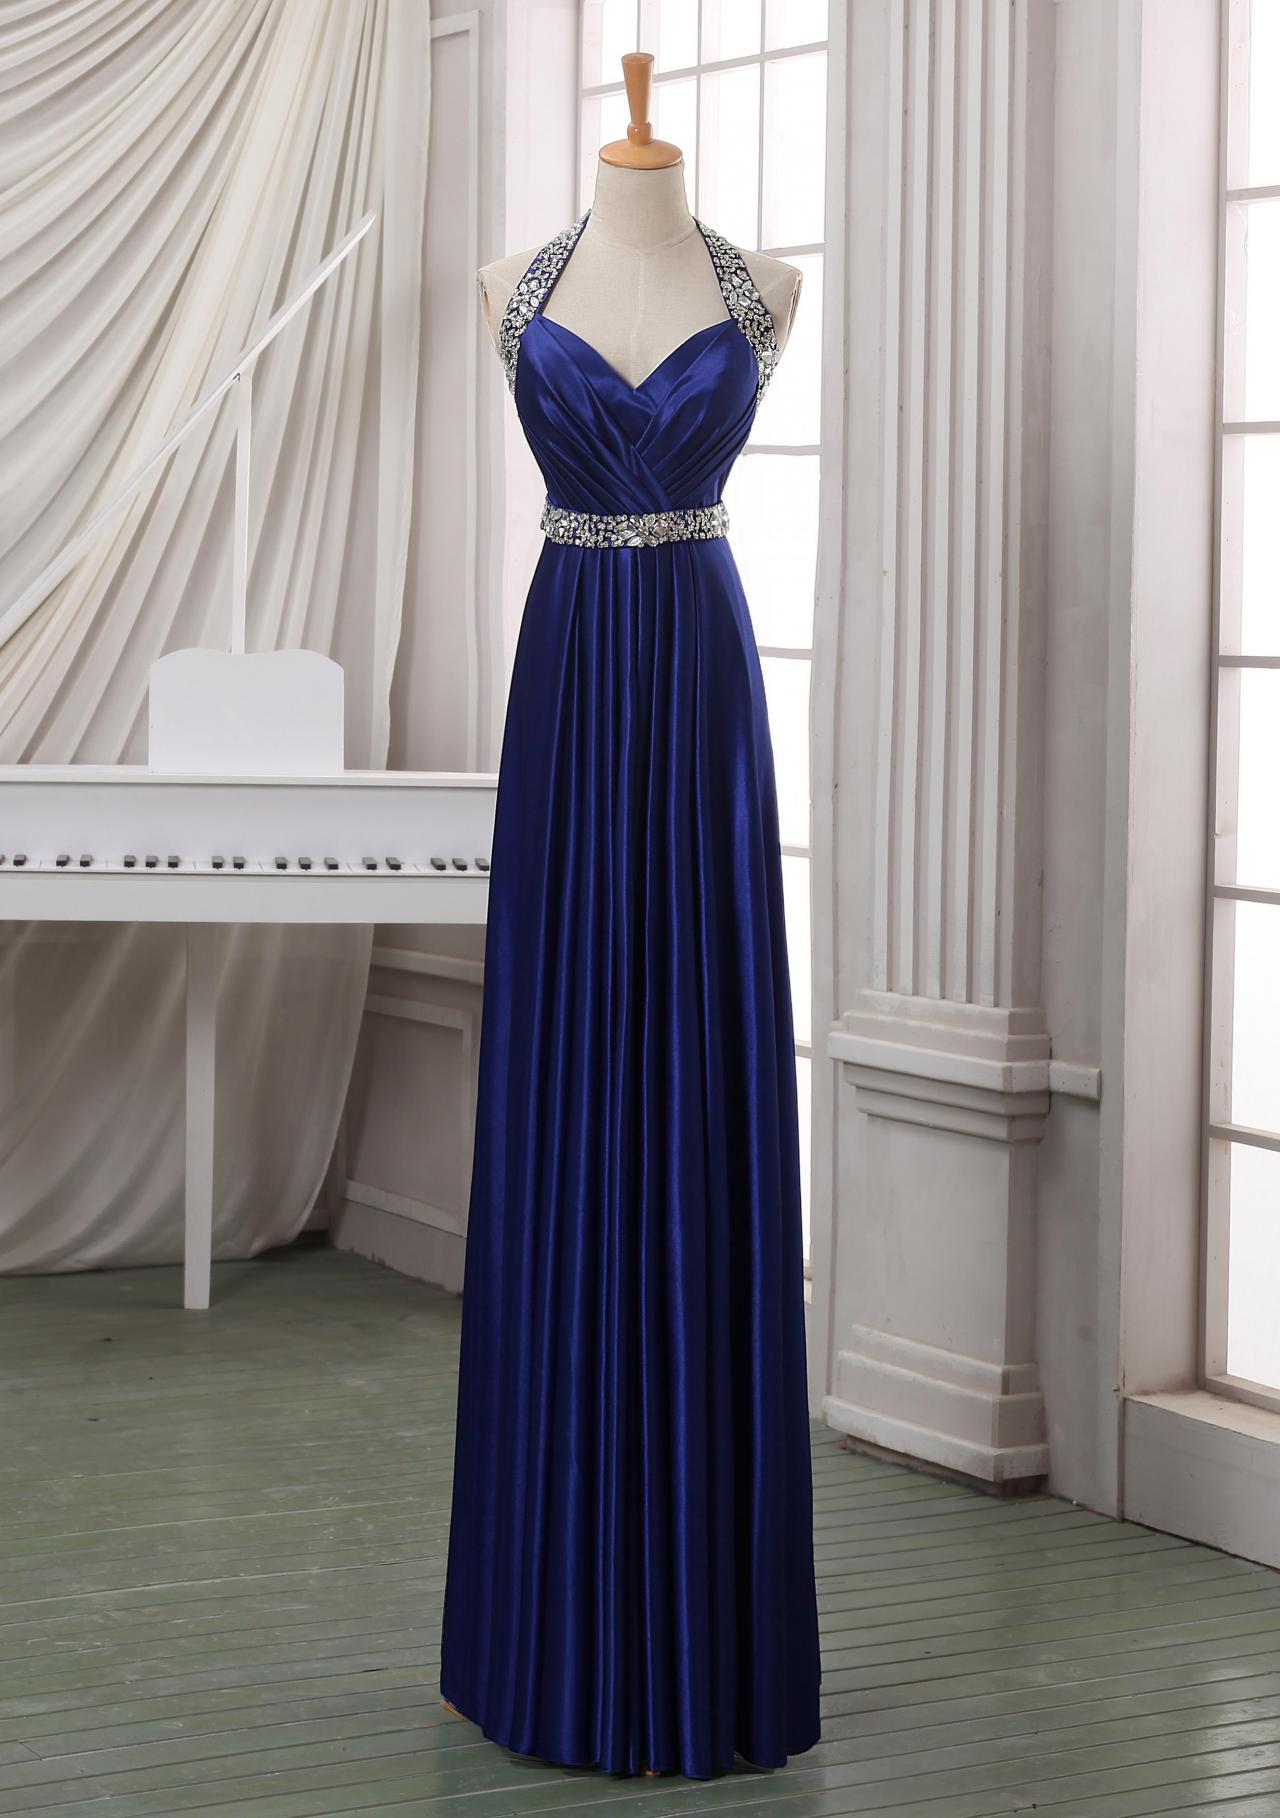 Prom dress,Navy blue long prom dress,haler backless prom dress,long satin prom dress/evening dress/formal dress/wedding party dress wirth beading sash.